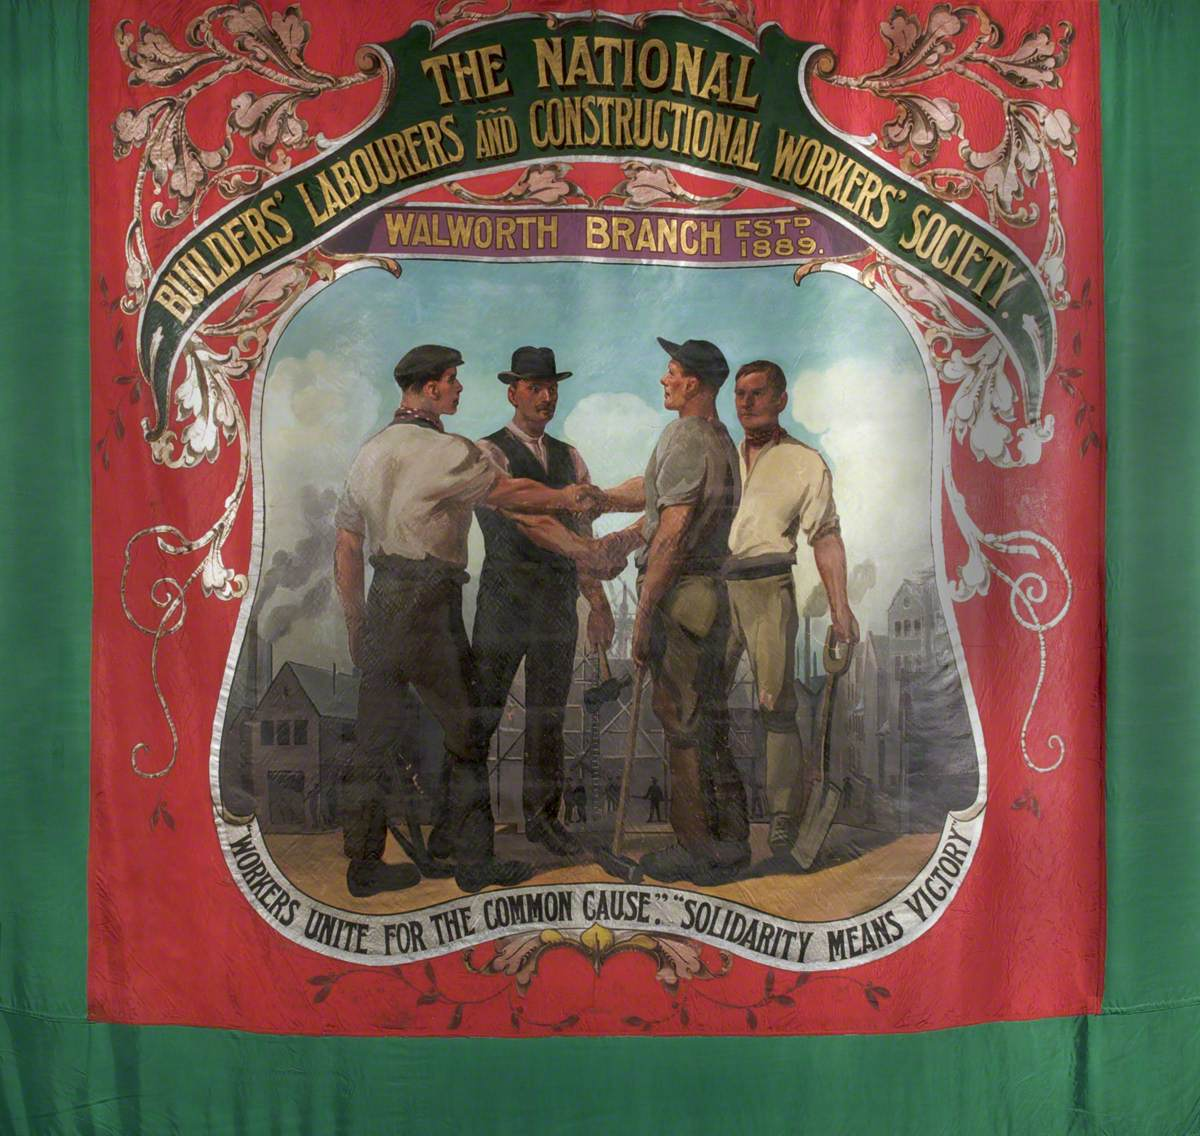 National Builders Labourers And Construction Workers Society Banner